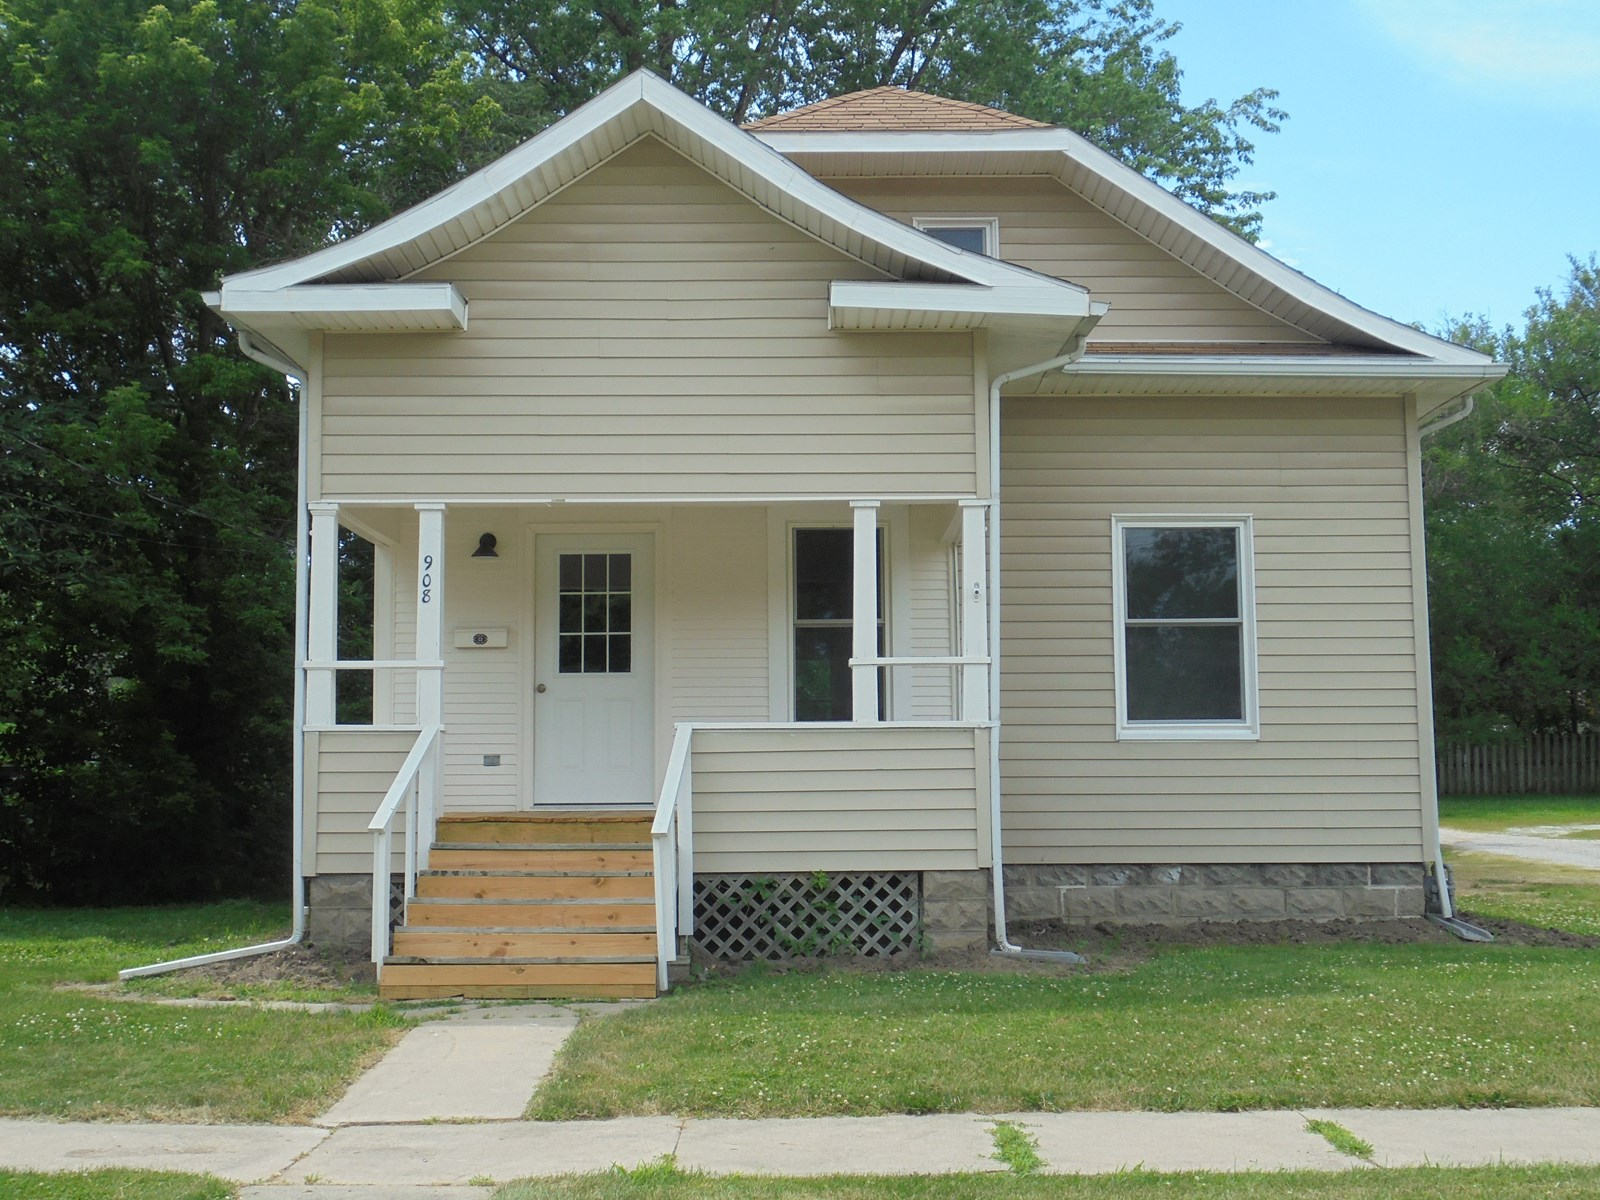 Low Maintenance, Move-in Ready, Like New Bungalow! For Sale!